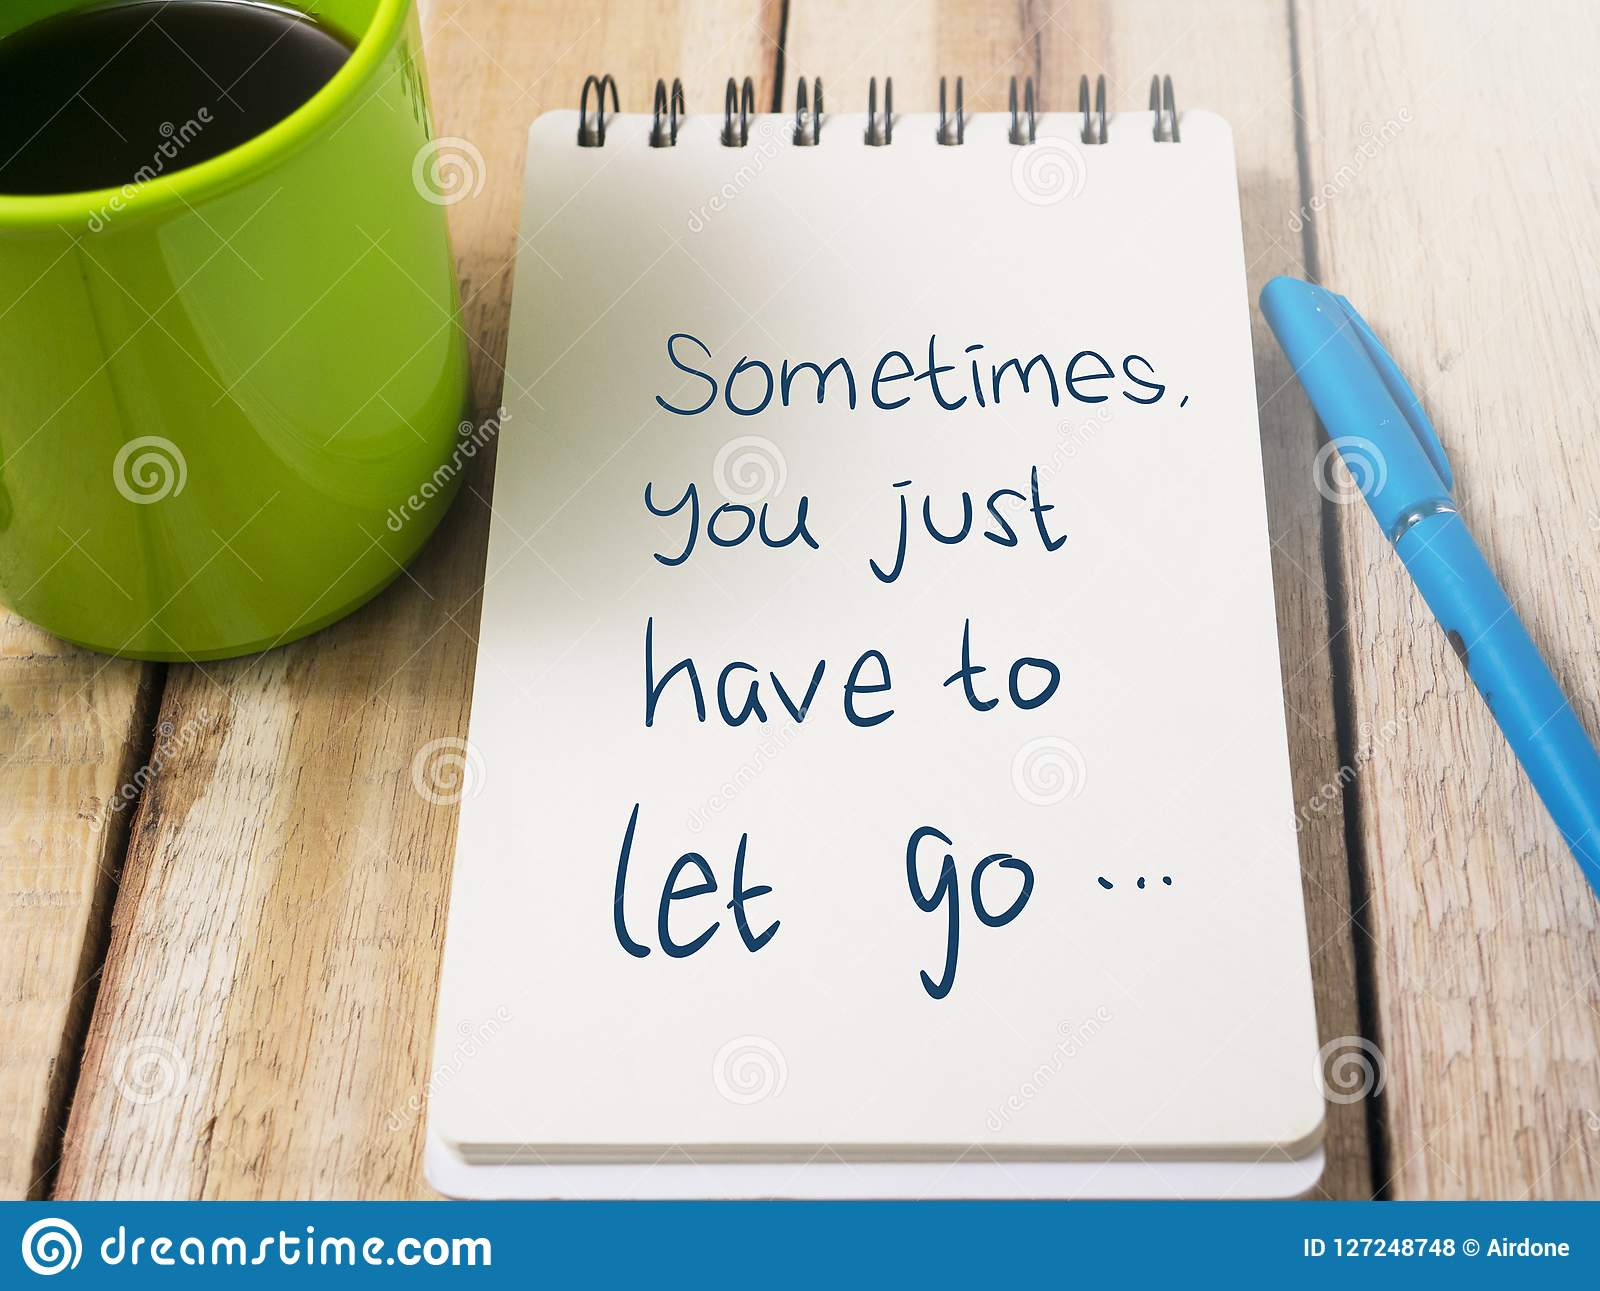 Sometimes You Just Have To Let Go Motivational Words Quotes Con